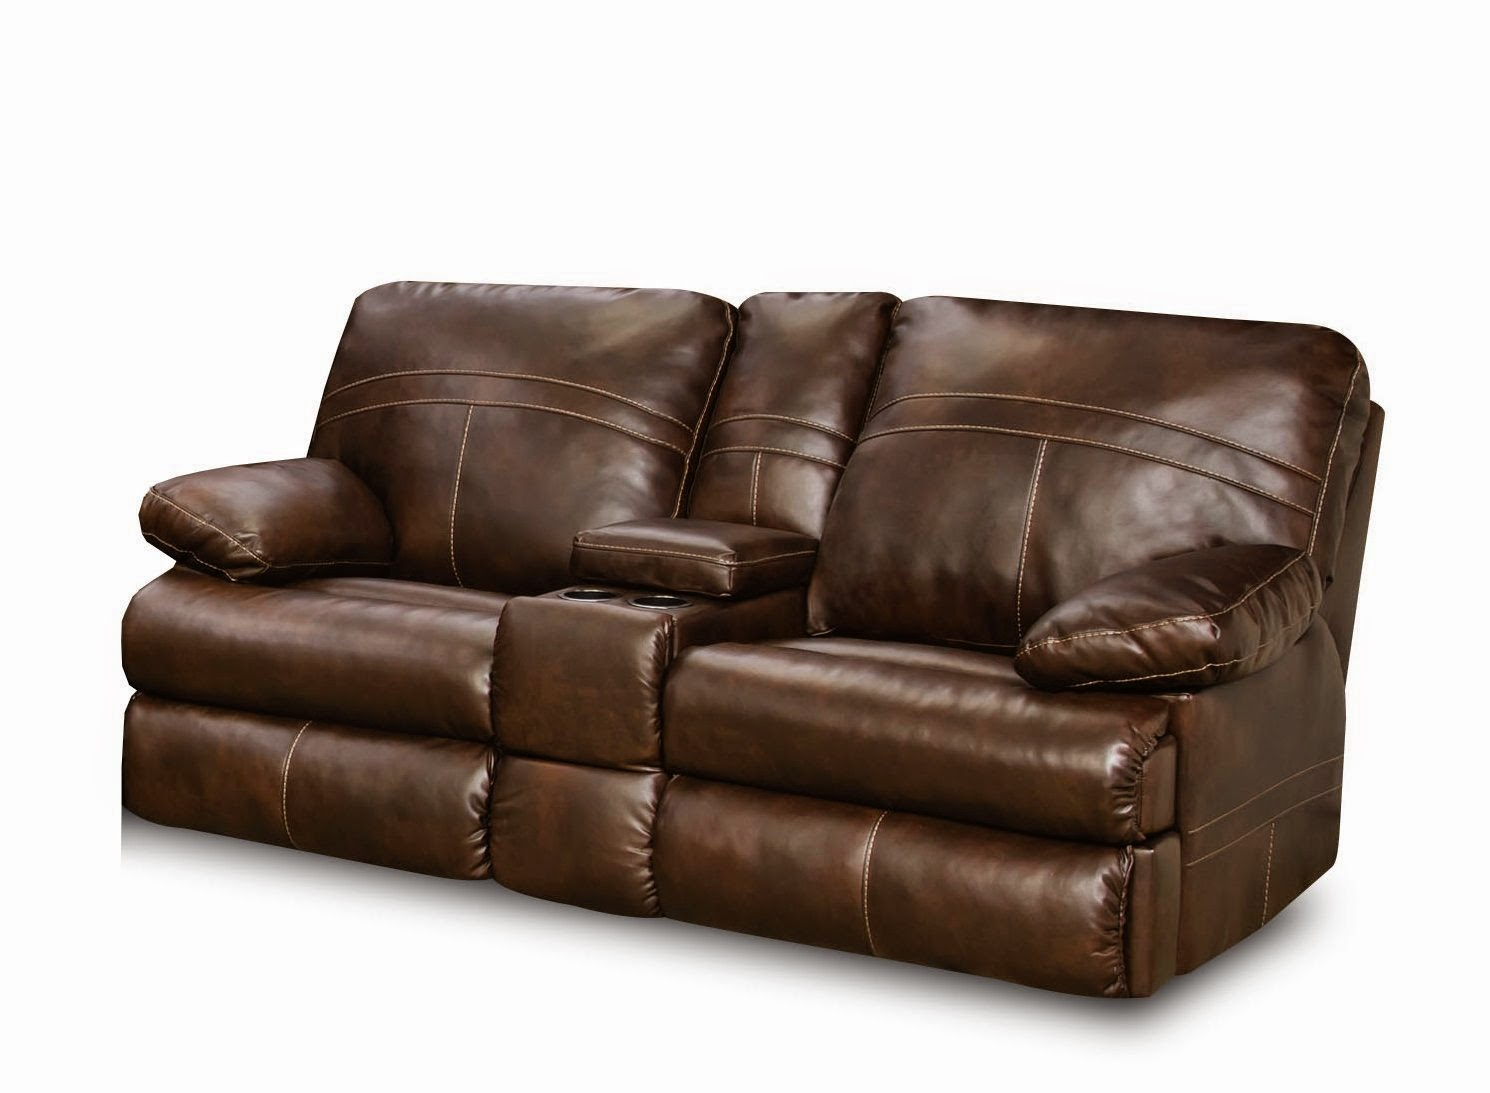 The best reclining leather sofa reviews simmons leather reclining sofa and loveseat Leather reclining loveseat